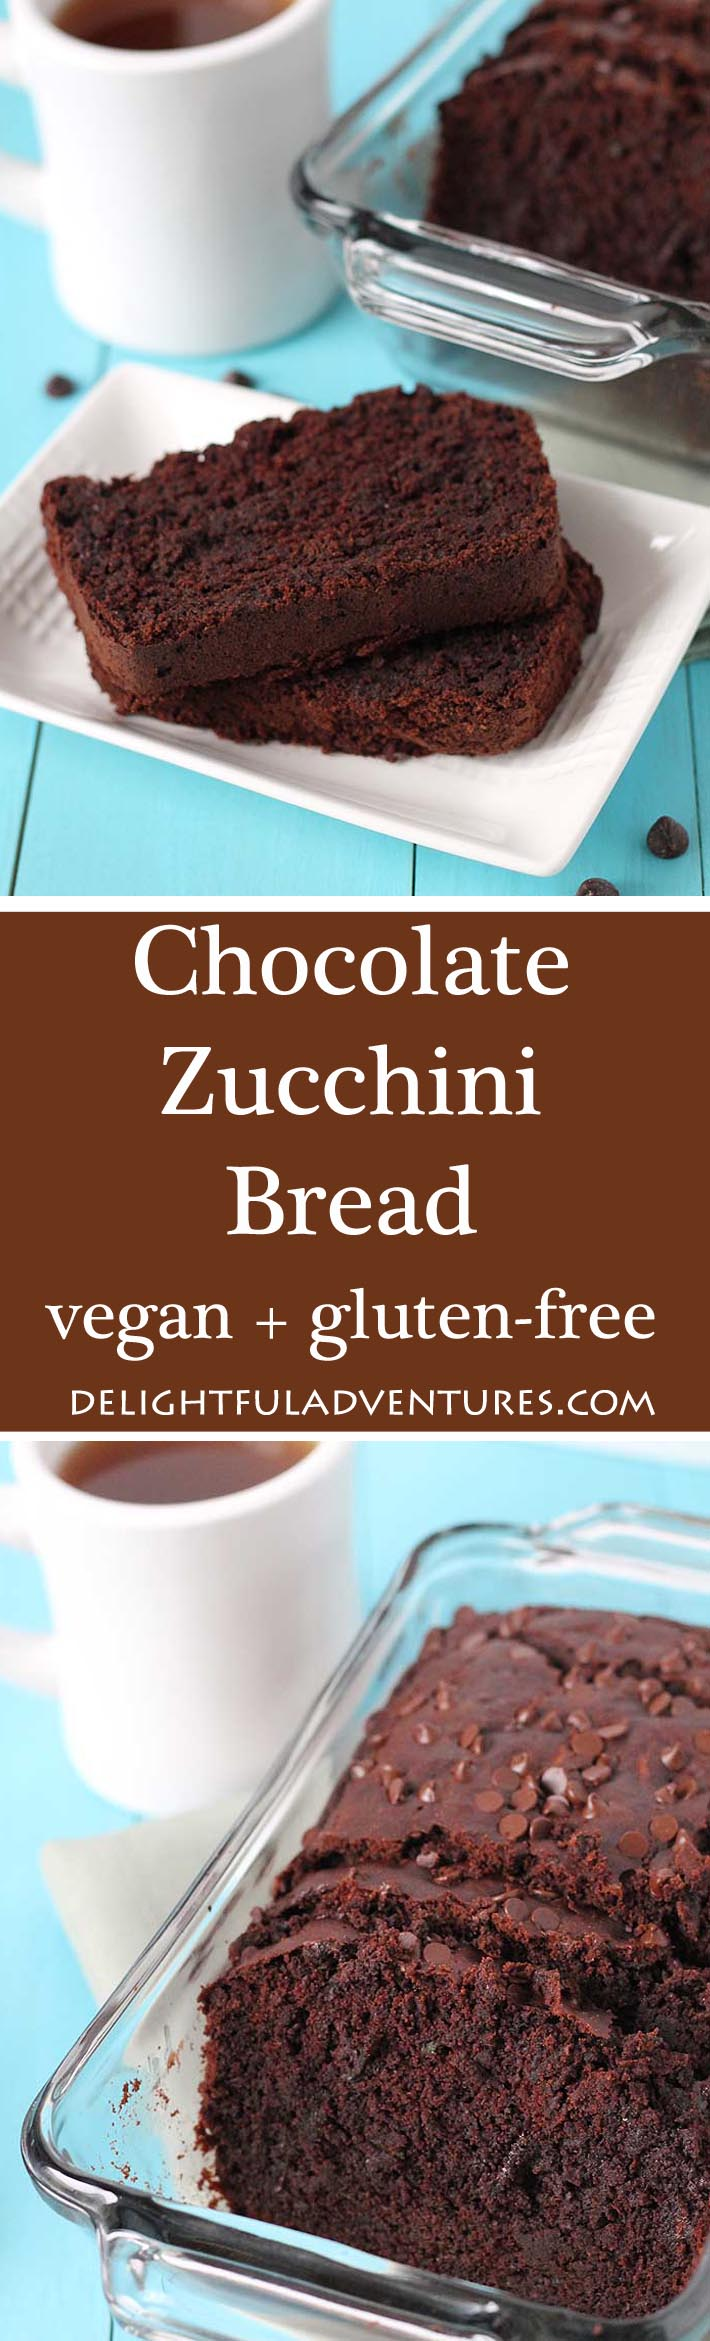 This nut free Vegan Gluten Free Chocolate Zucchini Bread gets its deep chocolaty flavour from dark chocolate and cocoa powder! No one will know it contains veggies! #zucchini #zucchinirecipe #veganchocolaterecipe